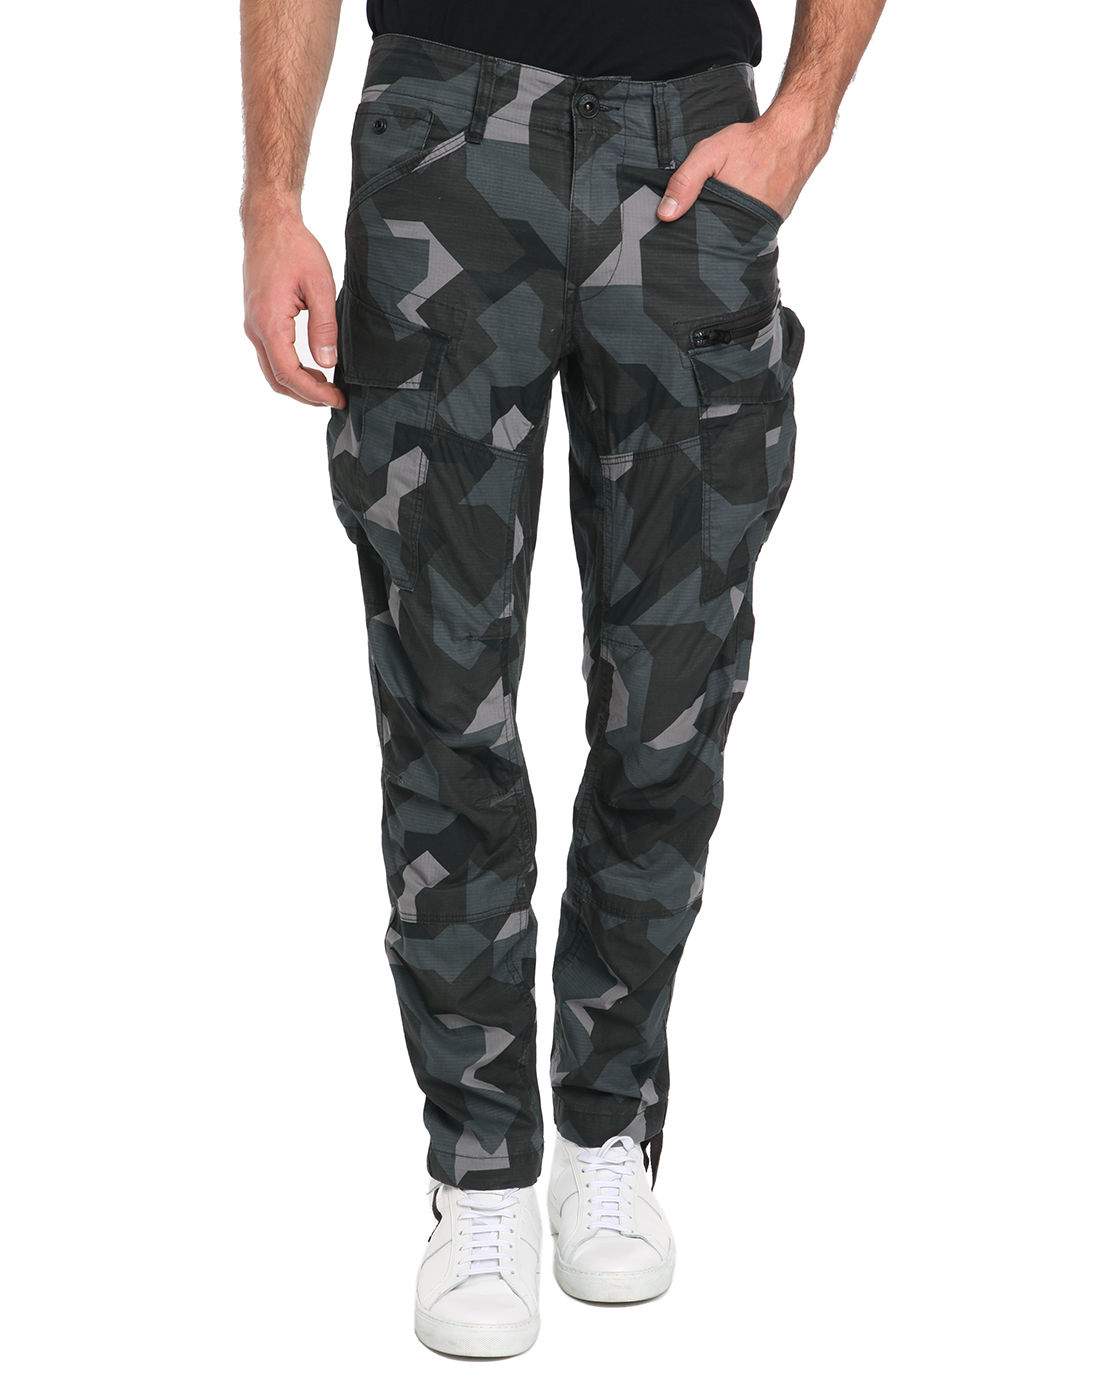 g star raw rovic zip 3d tapered camo cargo trousers in green for men lyst. Black Bedroom Furniture Sets. Home Design Ideas